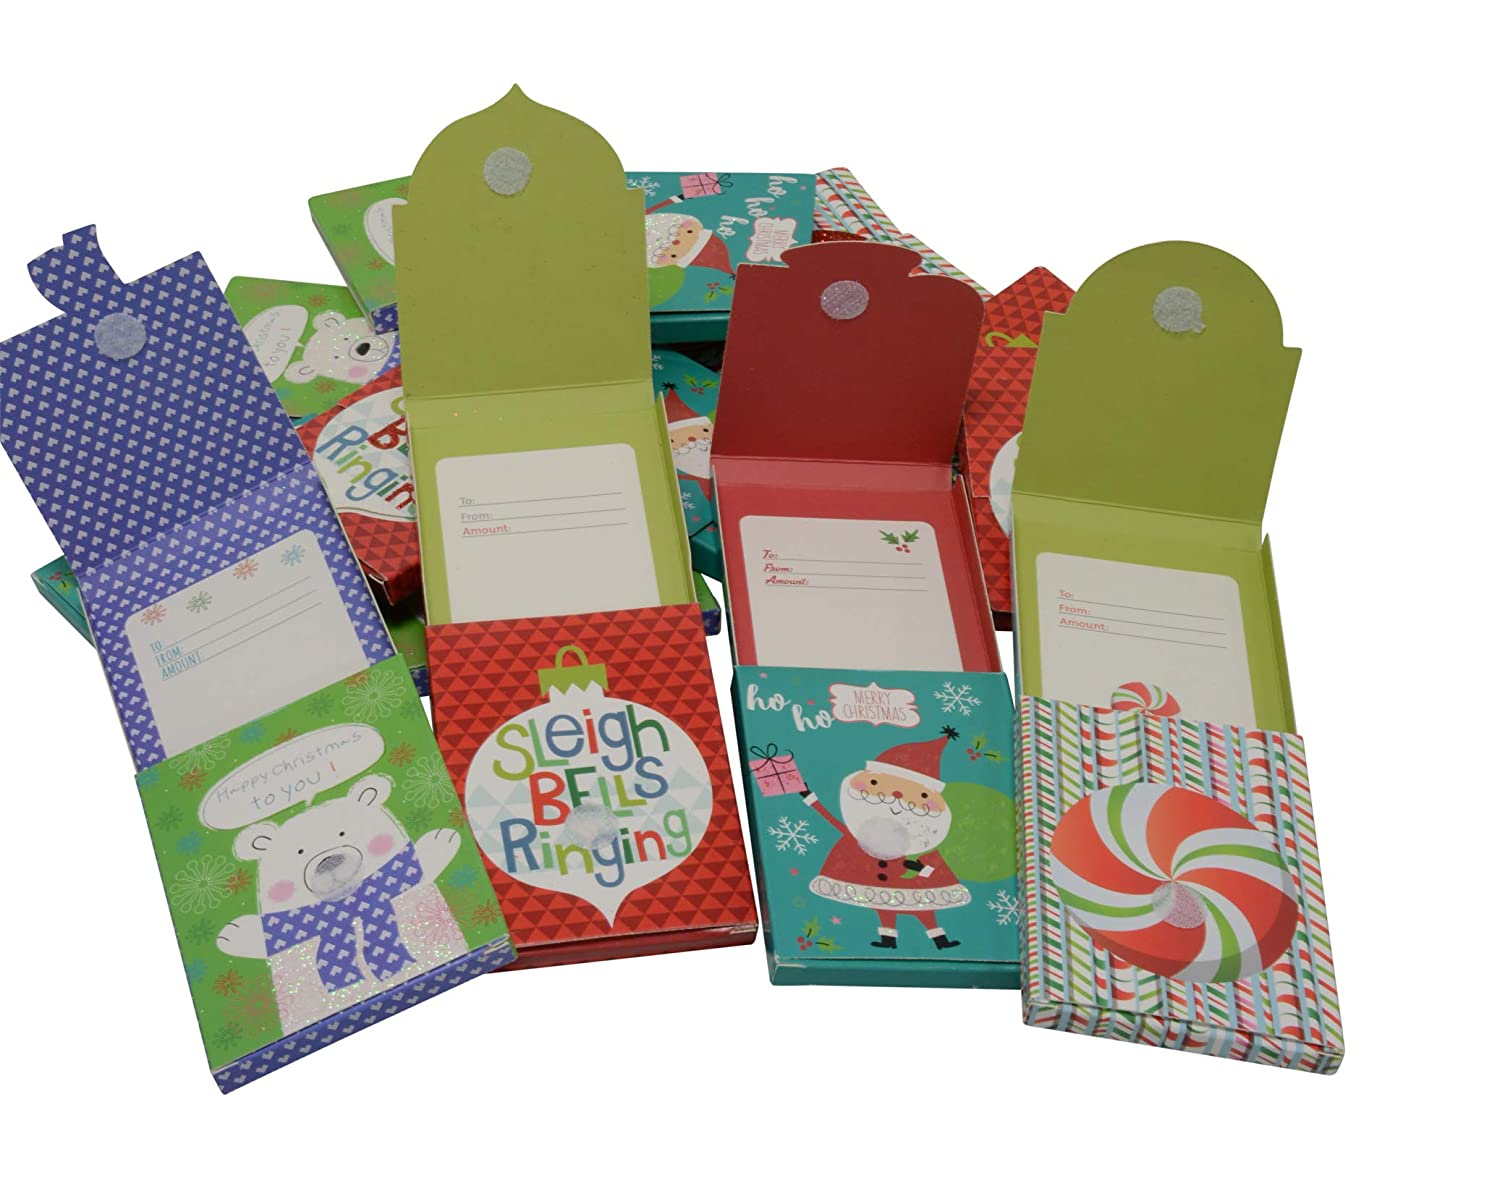 Christmas Gift Card Holder Ideas.Amazon Com Gift Card Holder Hook And Loop Closure